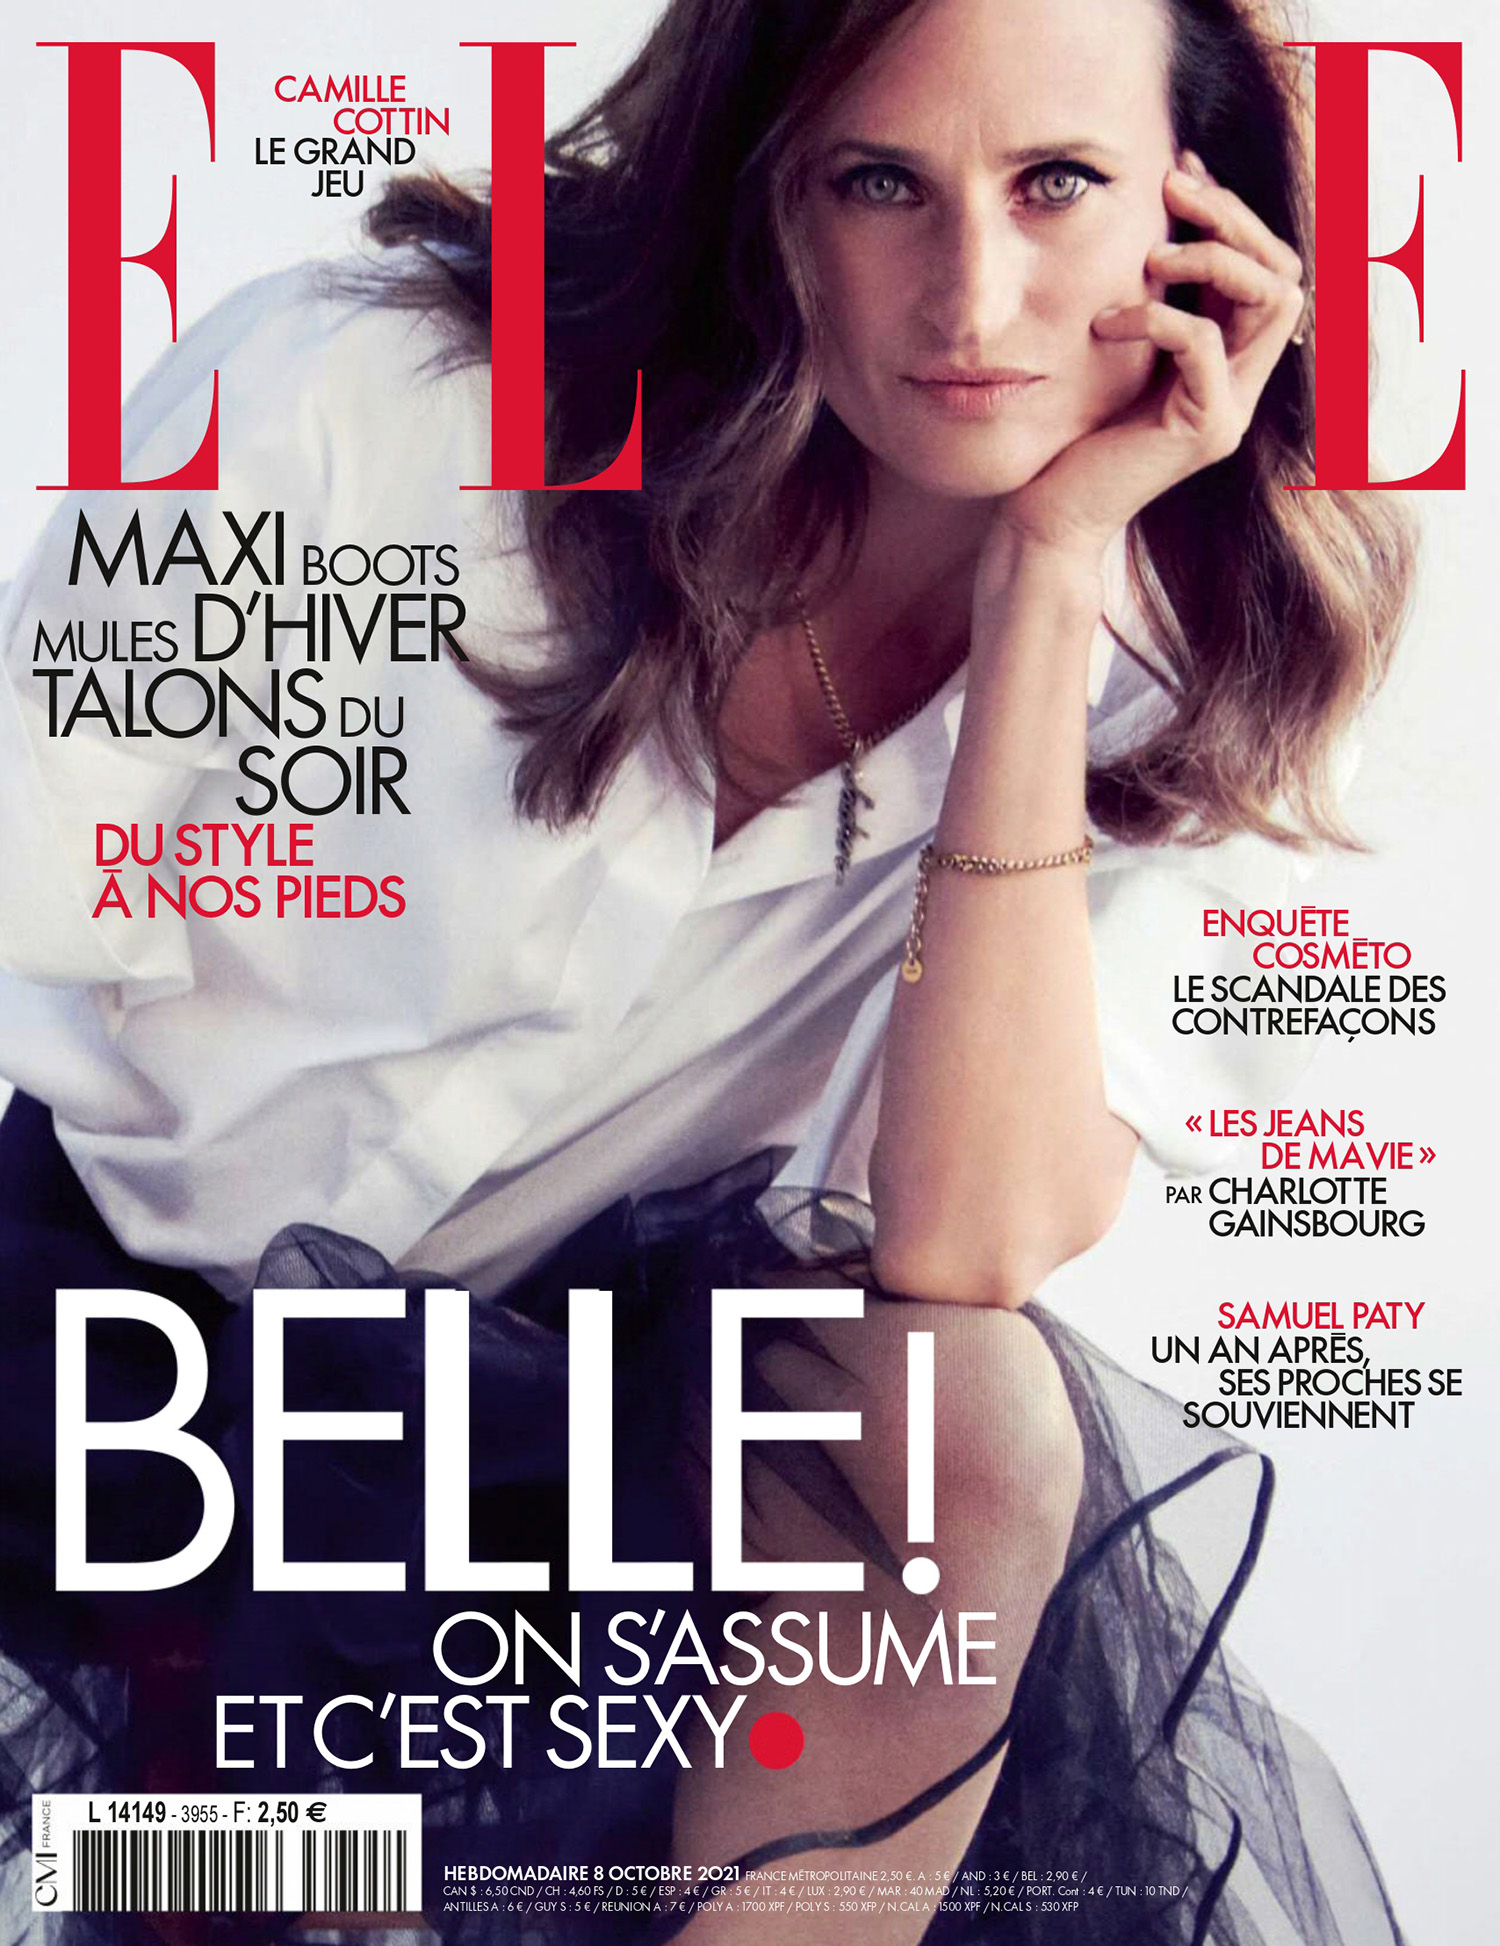 Camille Cottin covers Elle France October 8th, 2021 by Matthew Brookes